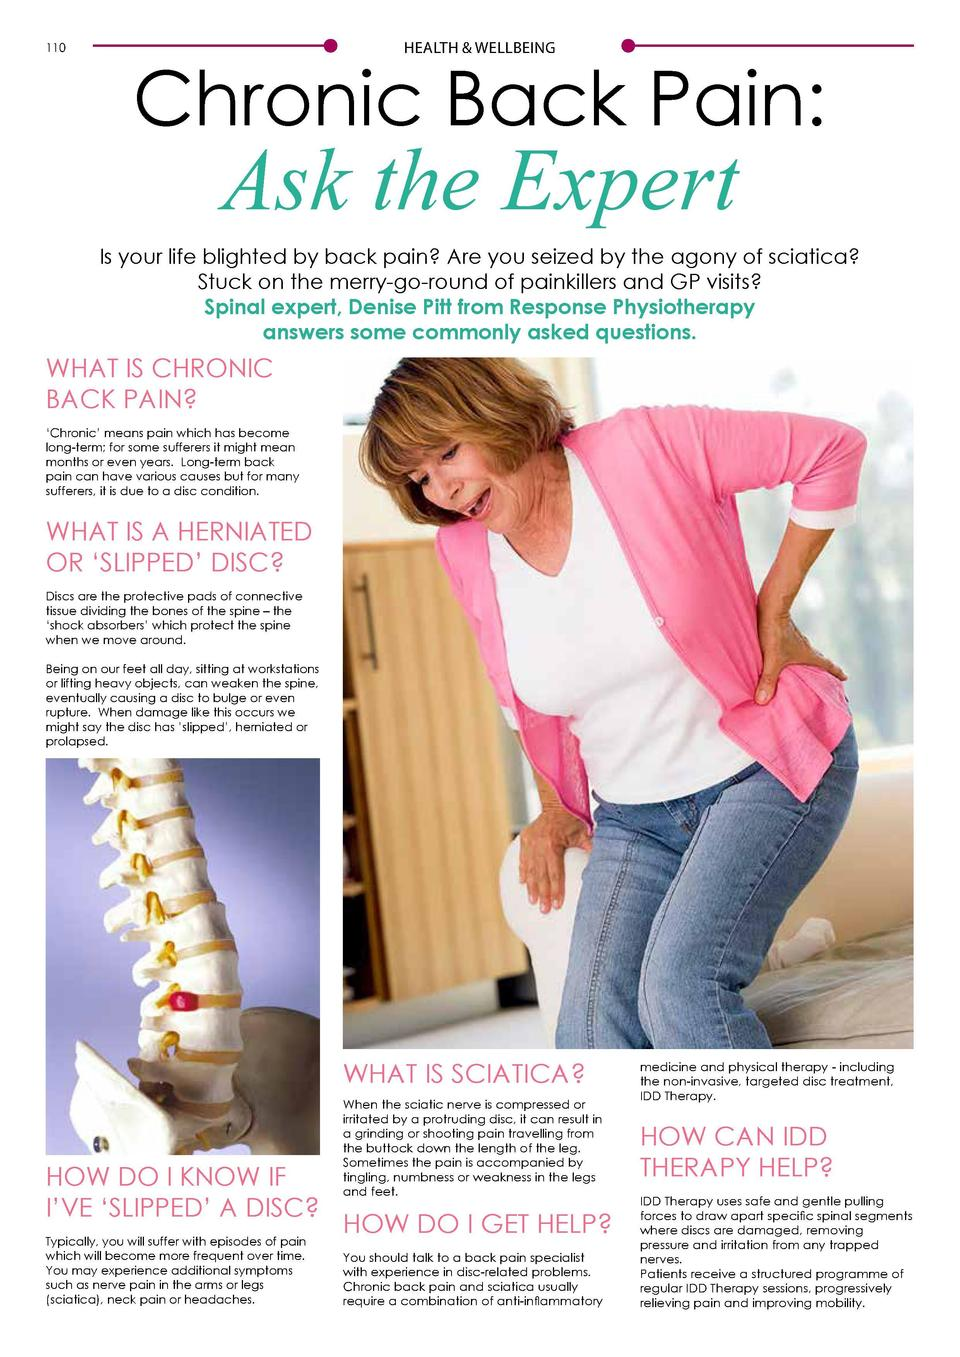 110  HEALTH   WELLBEING  HEALTH   WELLBEING  Chronic Back Pain   Ask the Expert  IDD THERAPY RELIEVES BACK PAIN AND SCIATI...